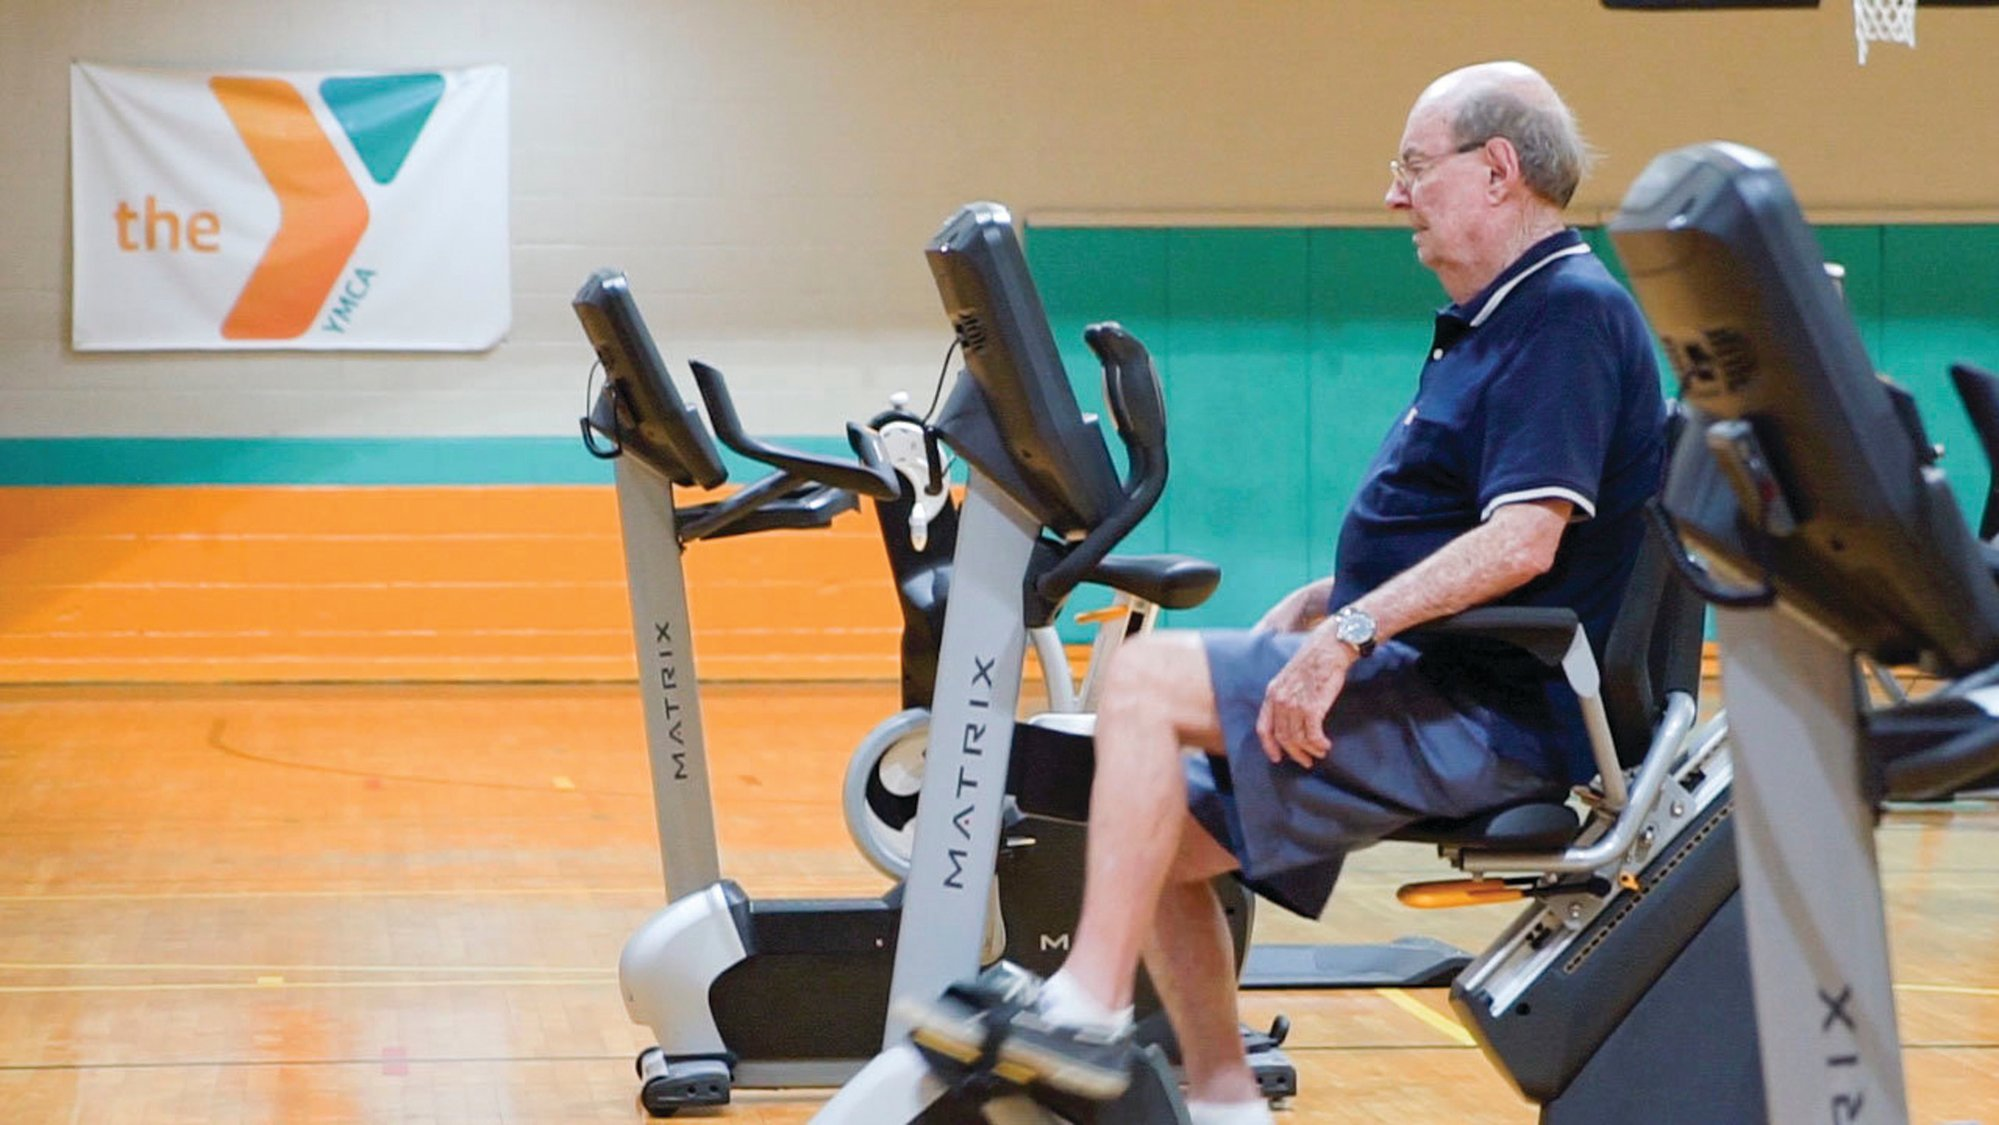 The Sumter YMCA reopened to members on Monday, with group class participants given their own floor space marked with tape, machines spaced farther apart and locker rooms remaining closed for now. It was shut down because of the coronavirus April 1.